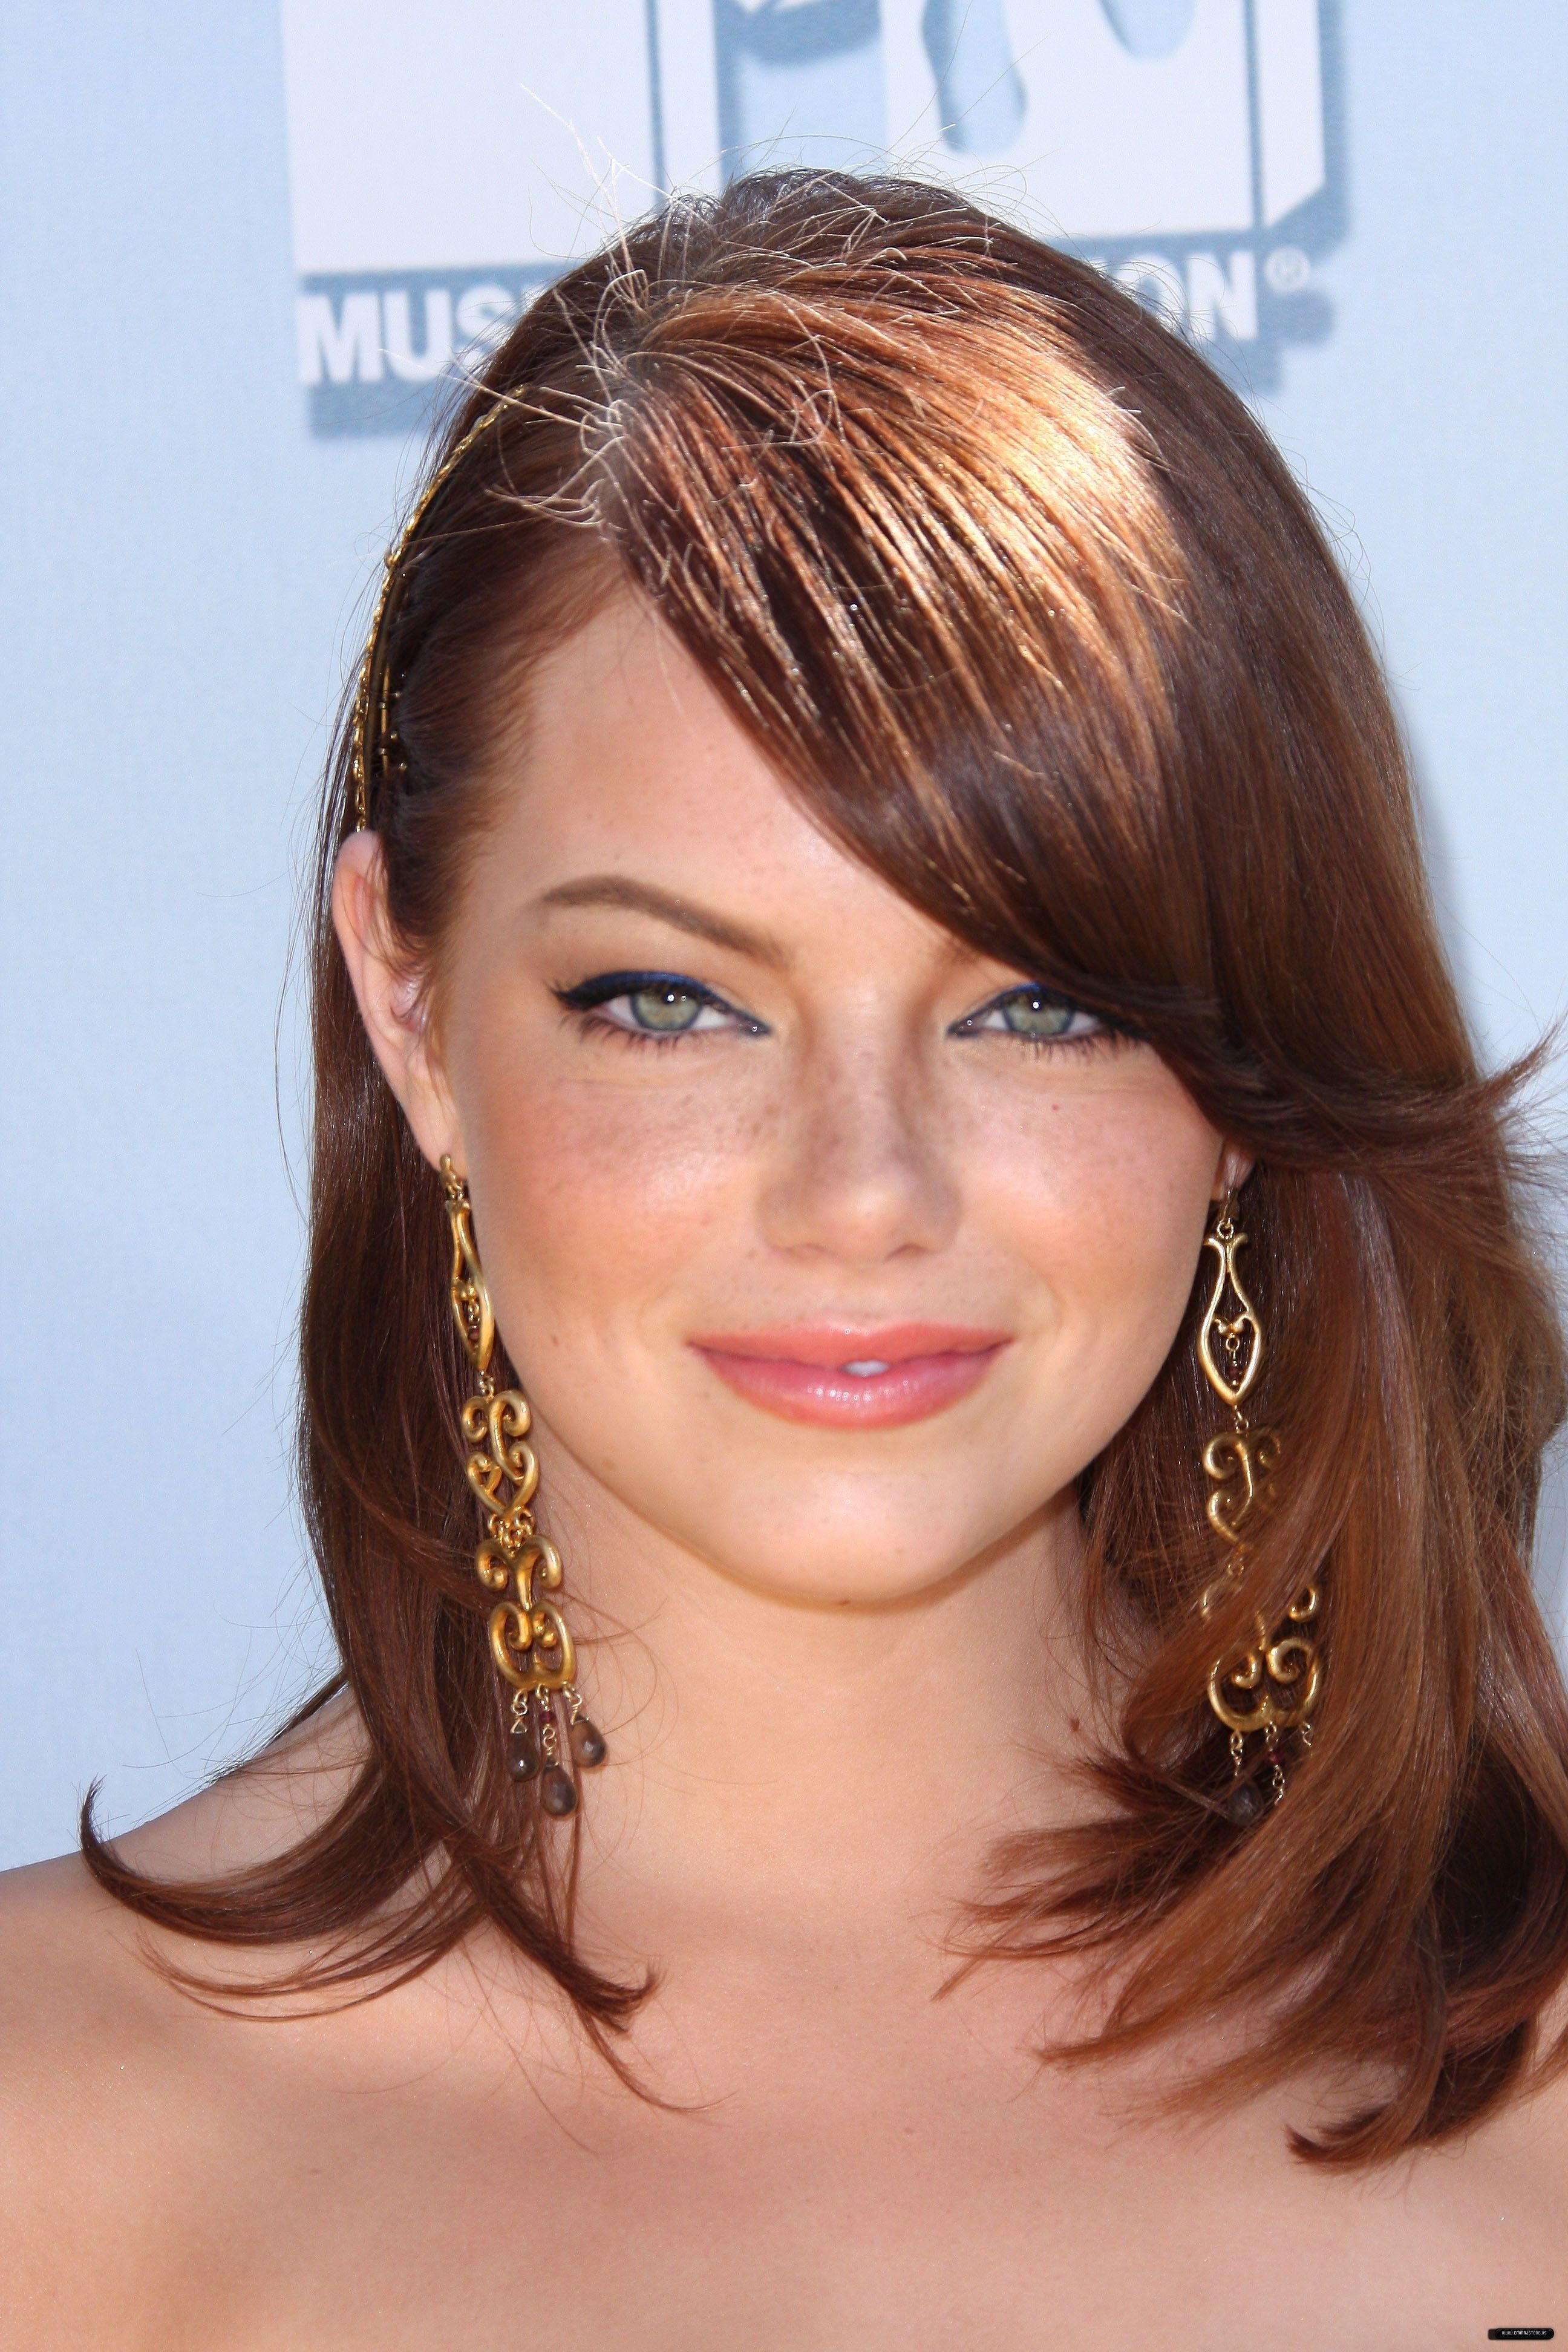 Emma Stone Couleur De Cheveux Pin By Nicole Perales On Emma Stone Cheveux Coiffure